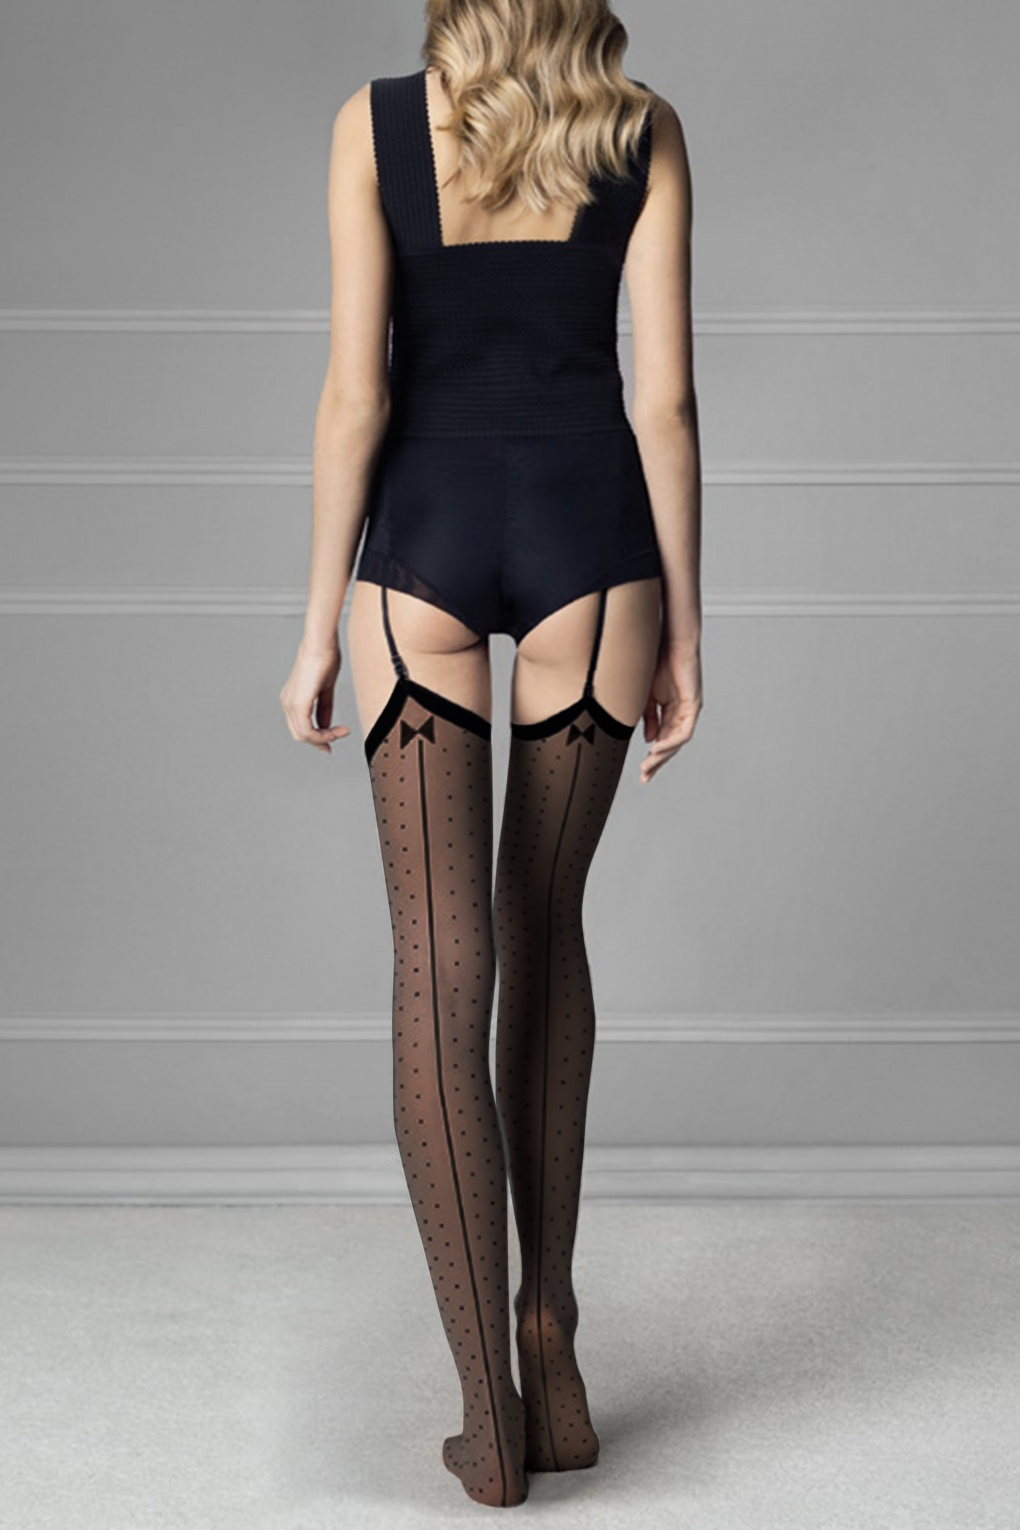 Seamed Stockings, Nylons, Tights 50s Gossip Polkadot Stockings in Black £5.39 AT vintagedancer.com